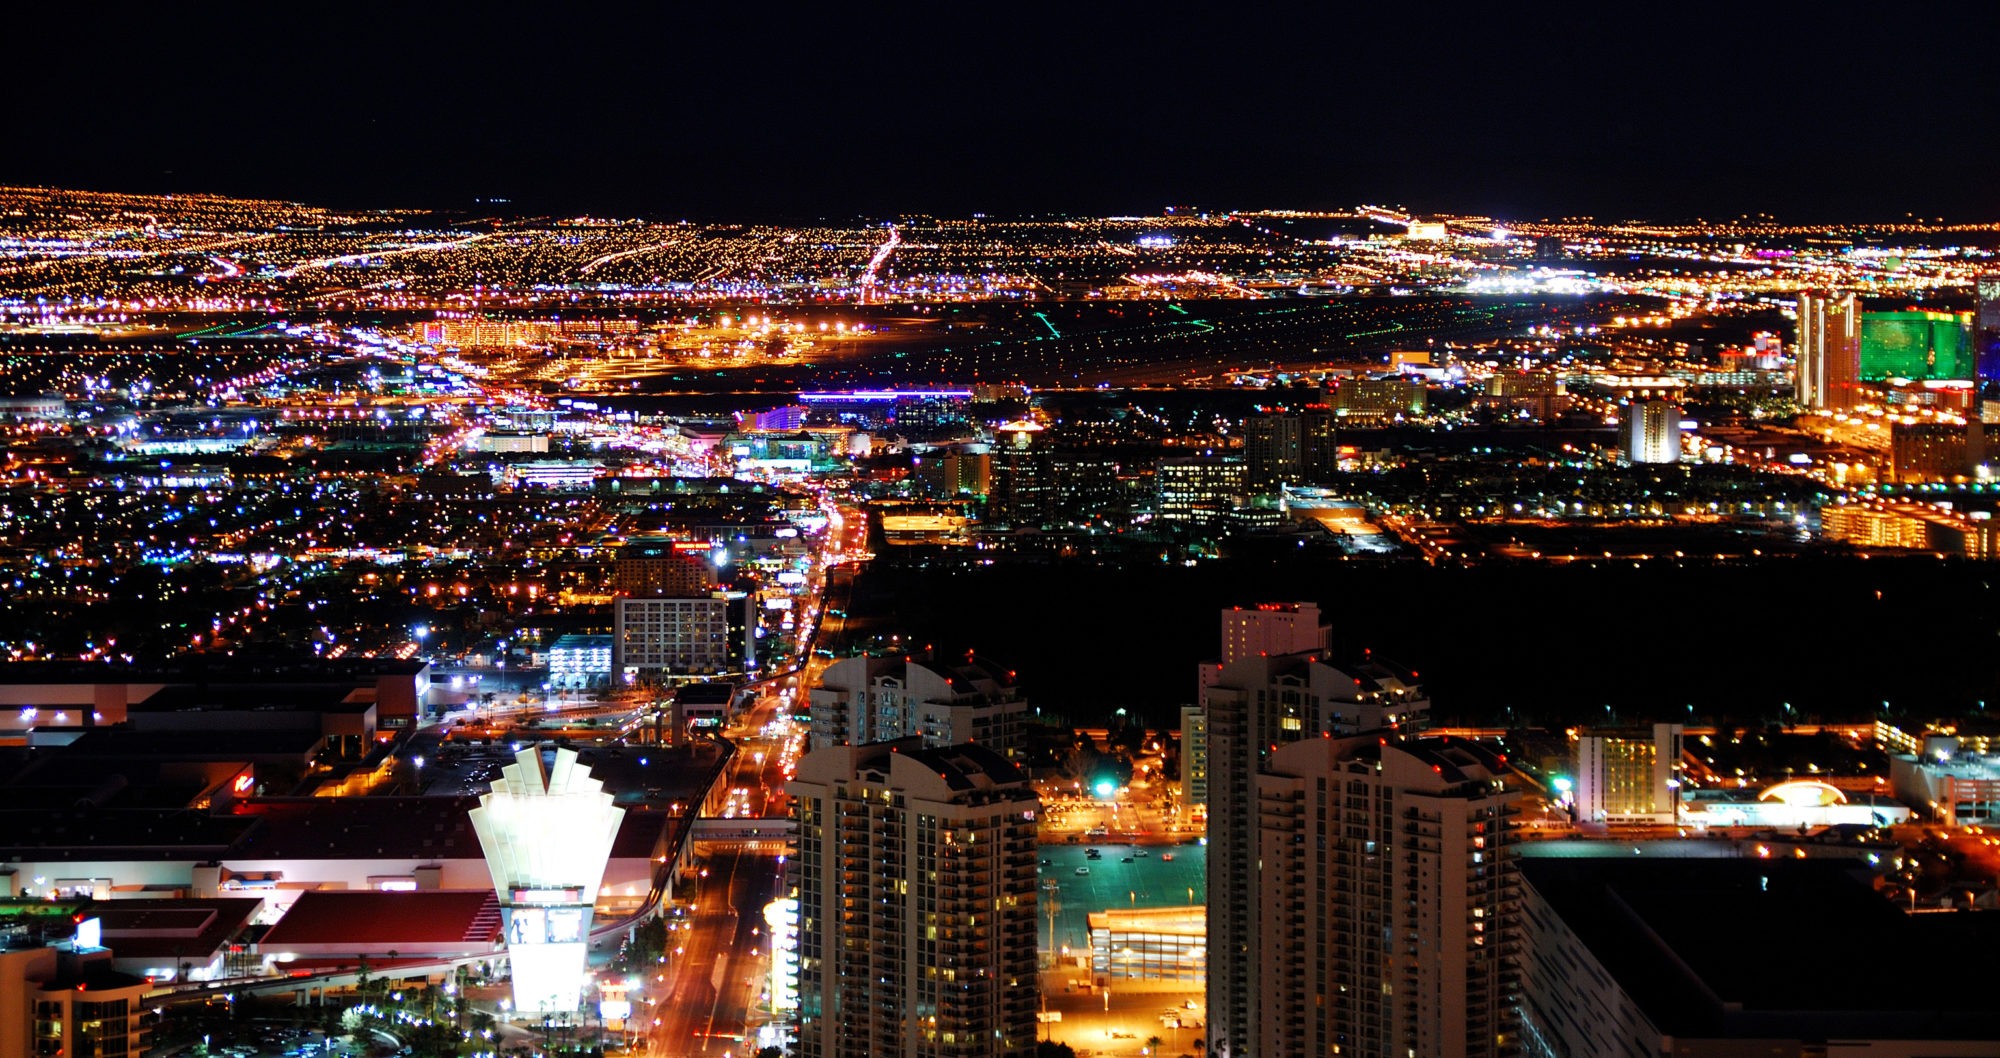 The Las Vegas City skyline -- a panoramic night view. Photo © Songquan Deng | Dreamstime.com